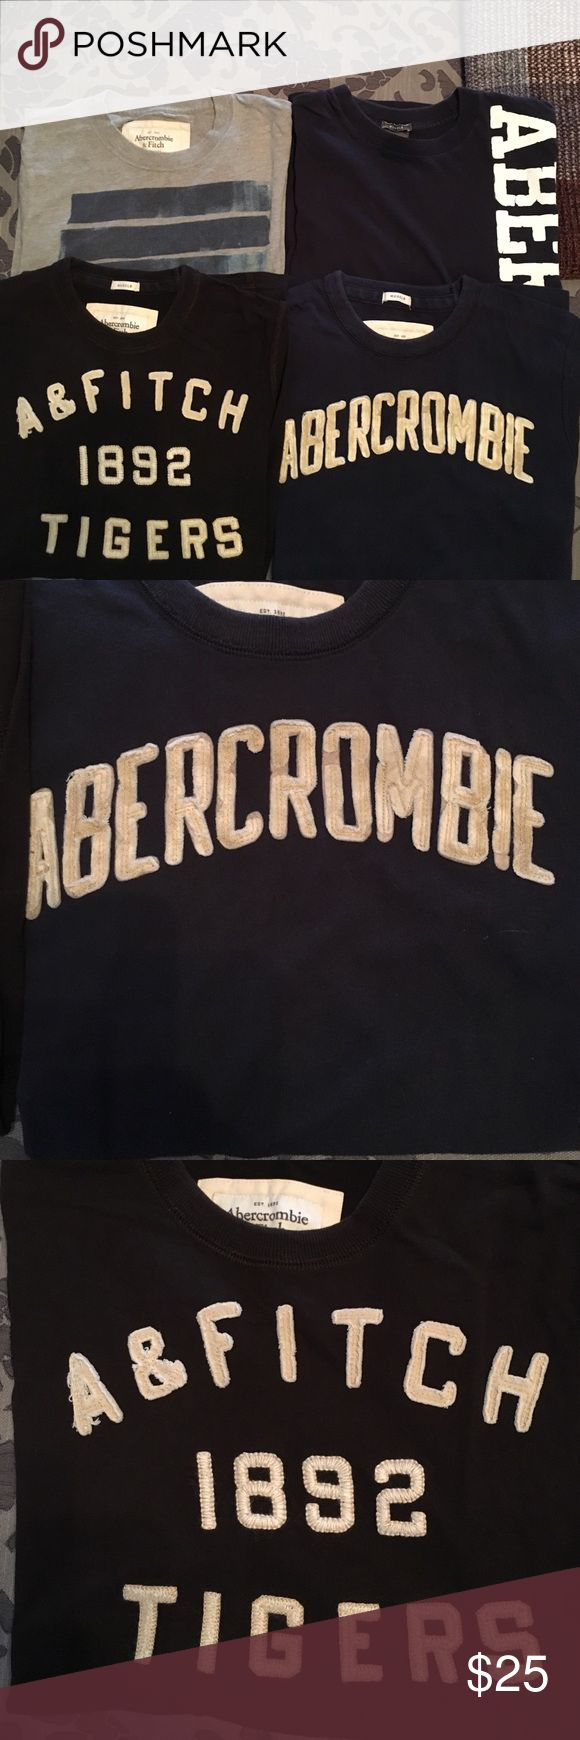 4 mens Abercrombie and Fitch t-shirts 4 men's medium Abercrombie and Fitch t-shirts, all size Medium Abercrombie & Fitch Shirts Tees - Short Sleeve